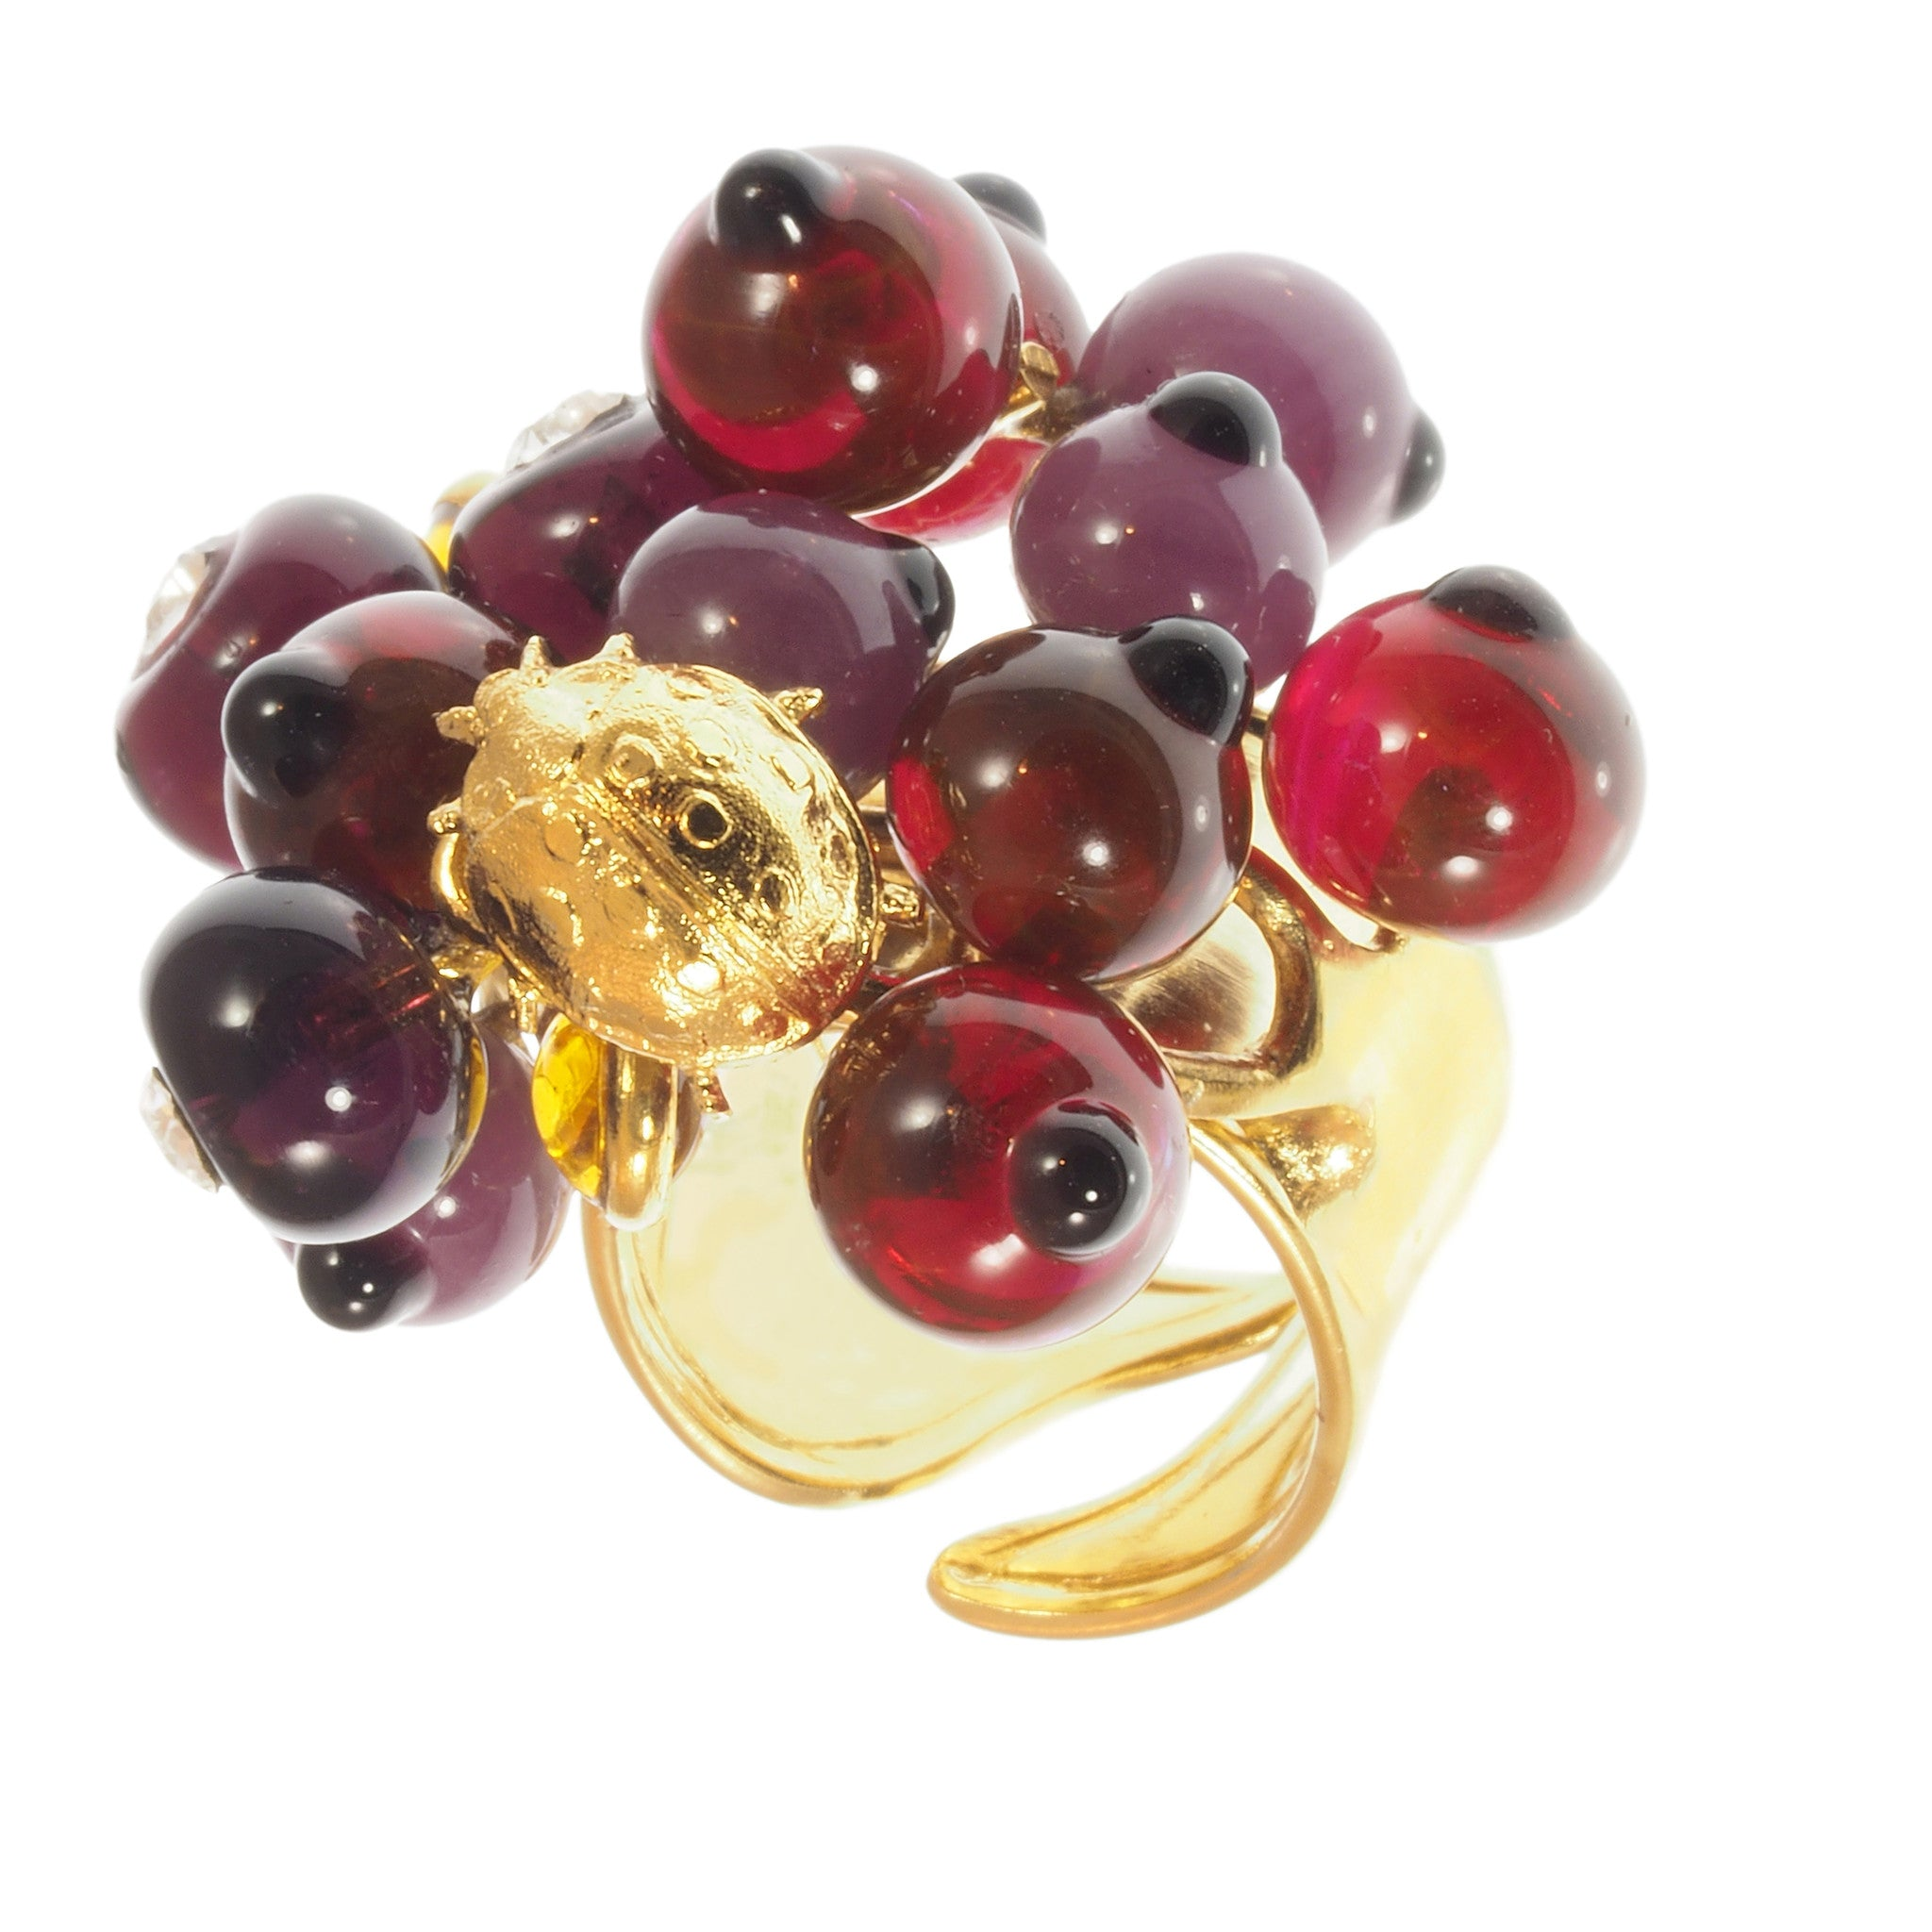 Red Currant Ring